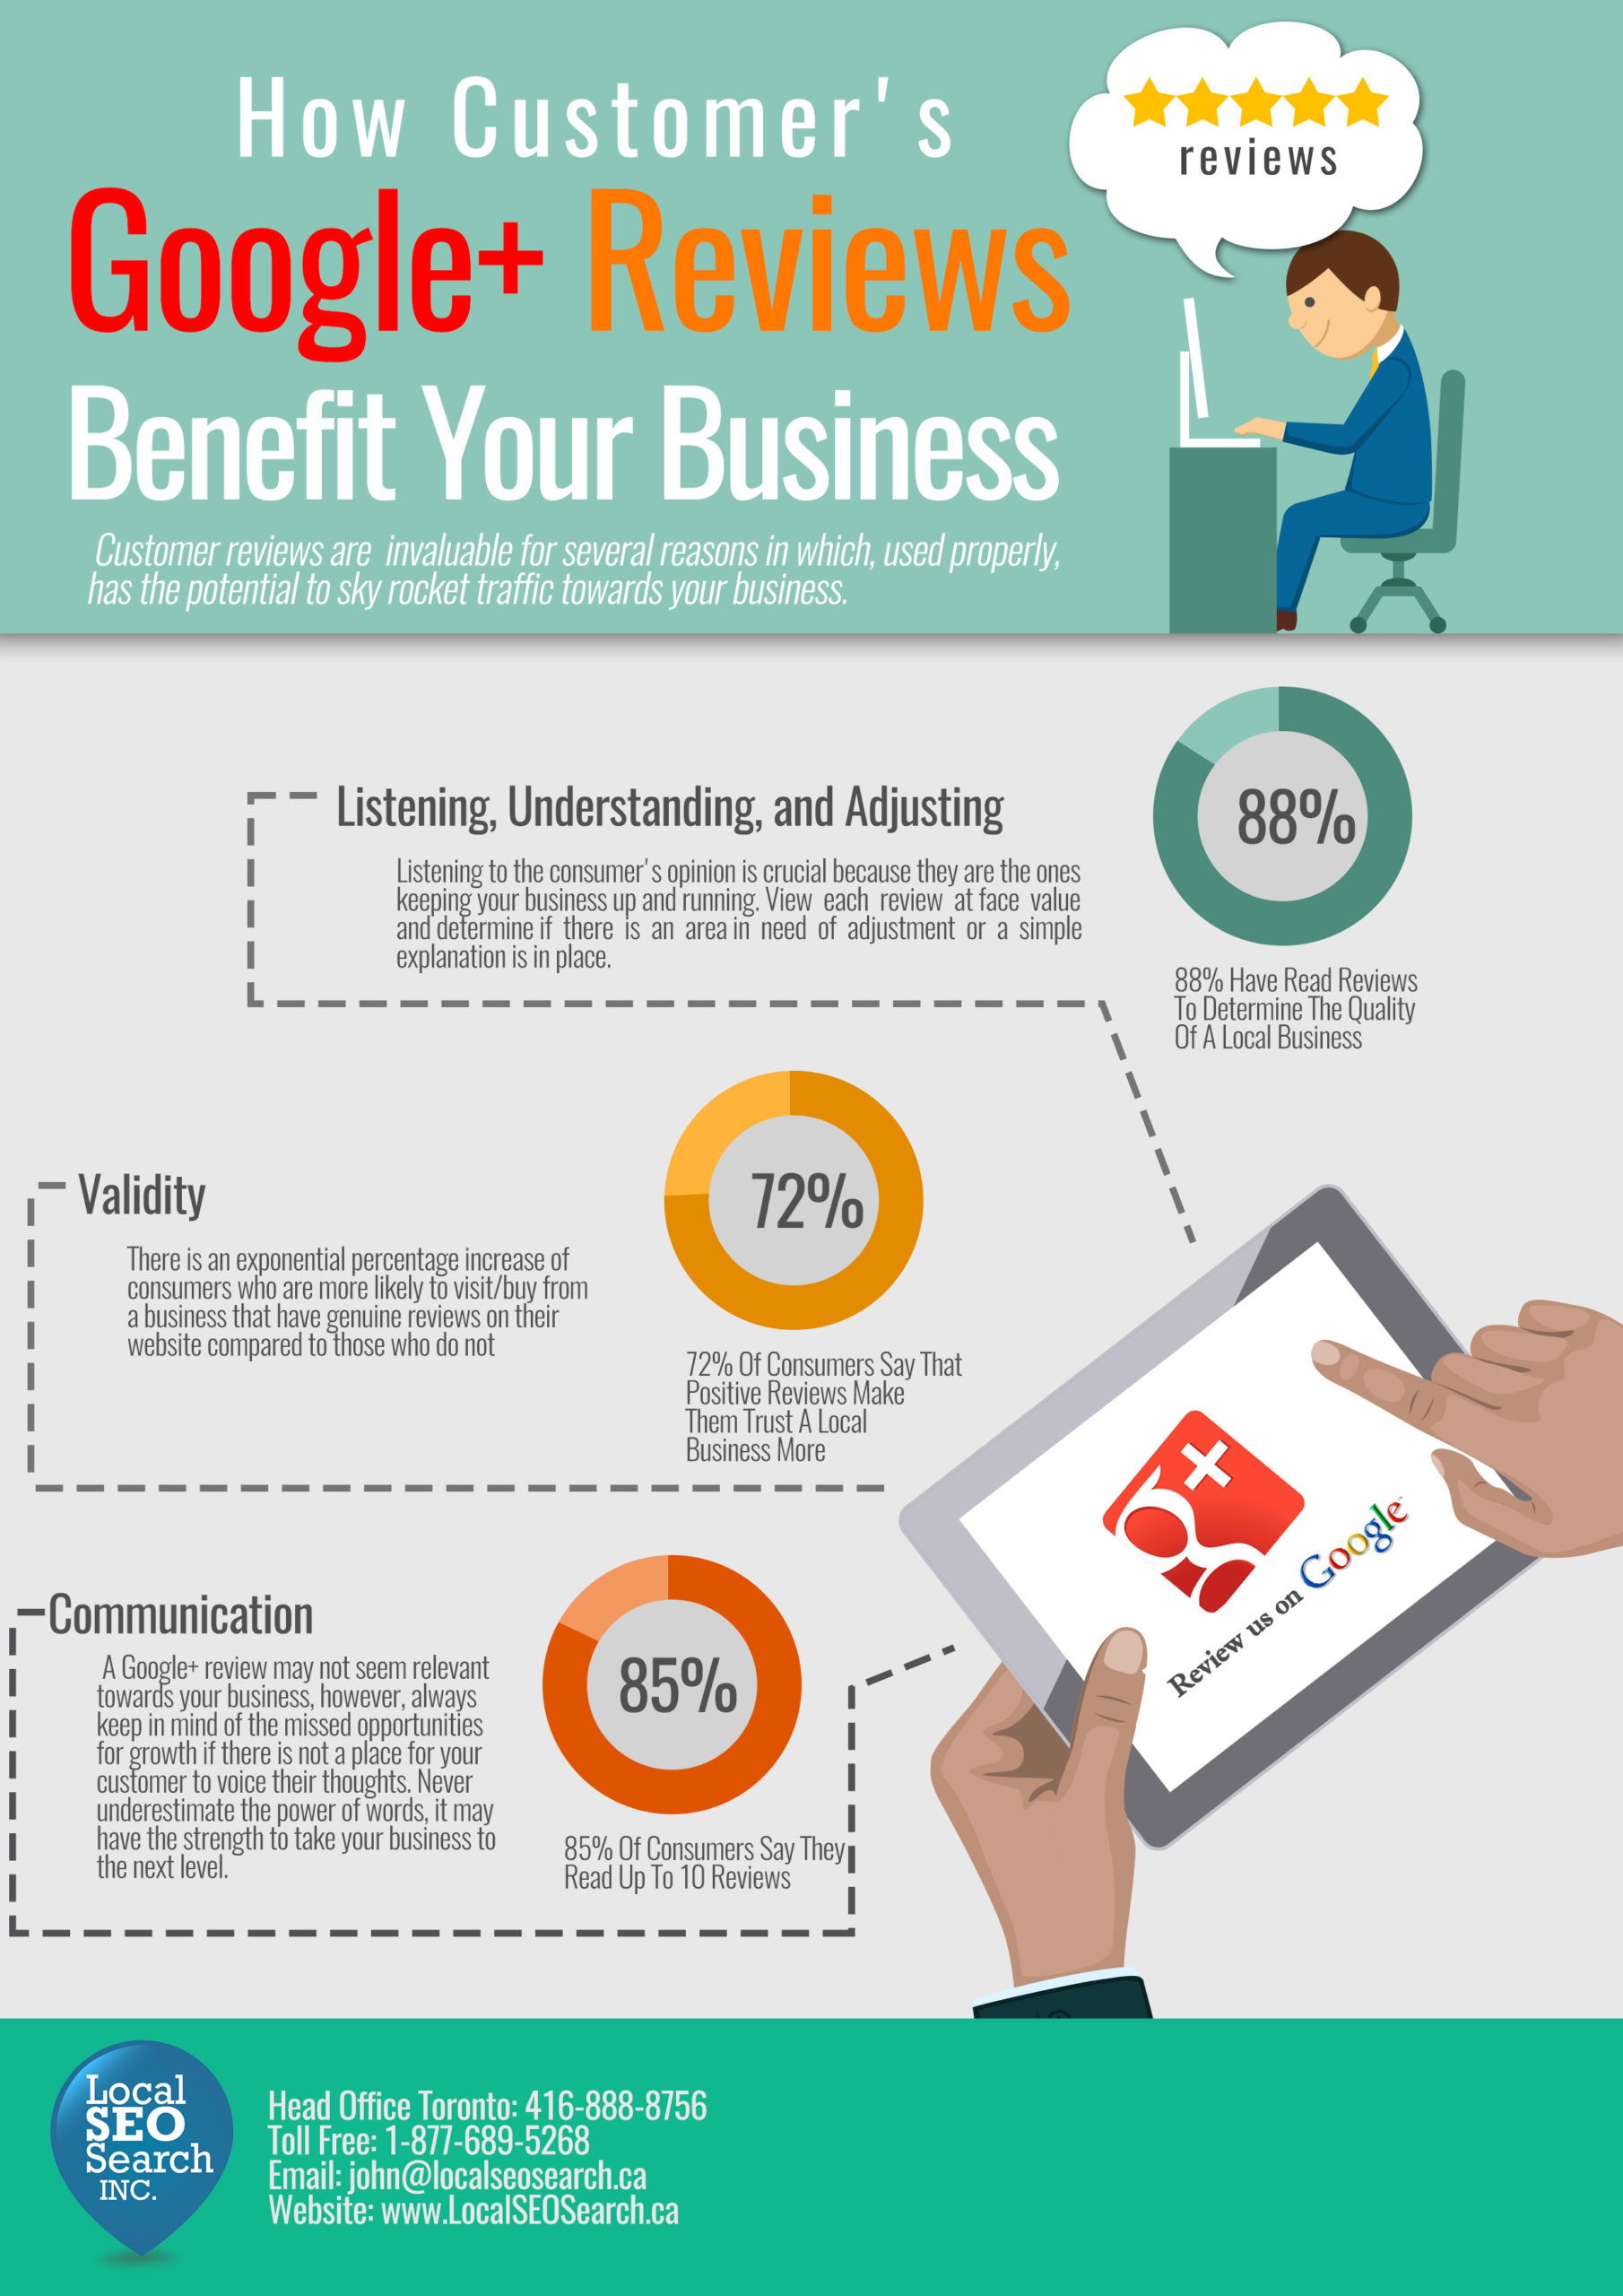 How-Customers-Google-Reviews-Benefit-Your-Business